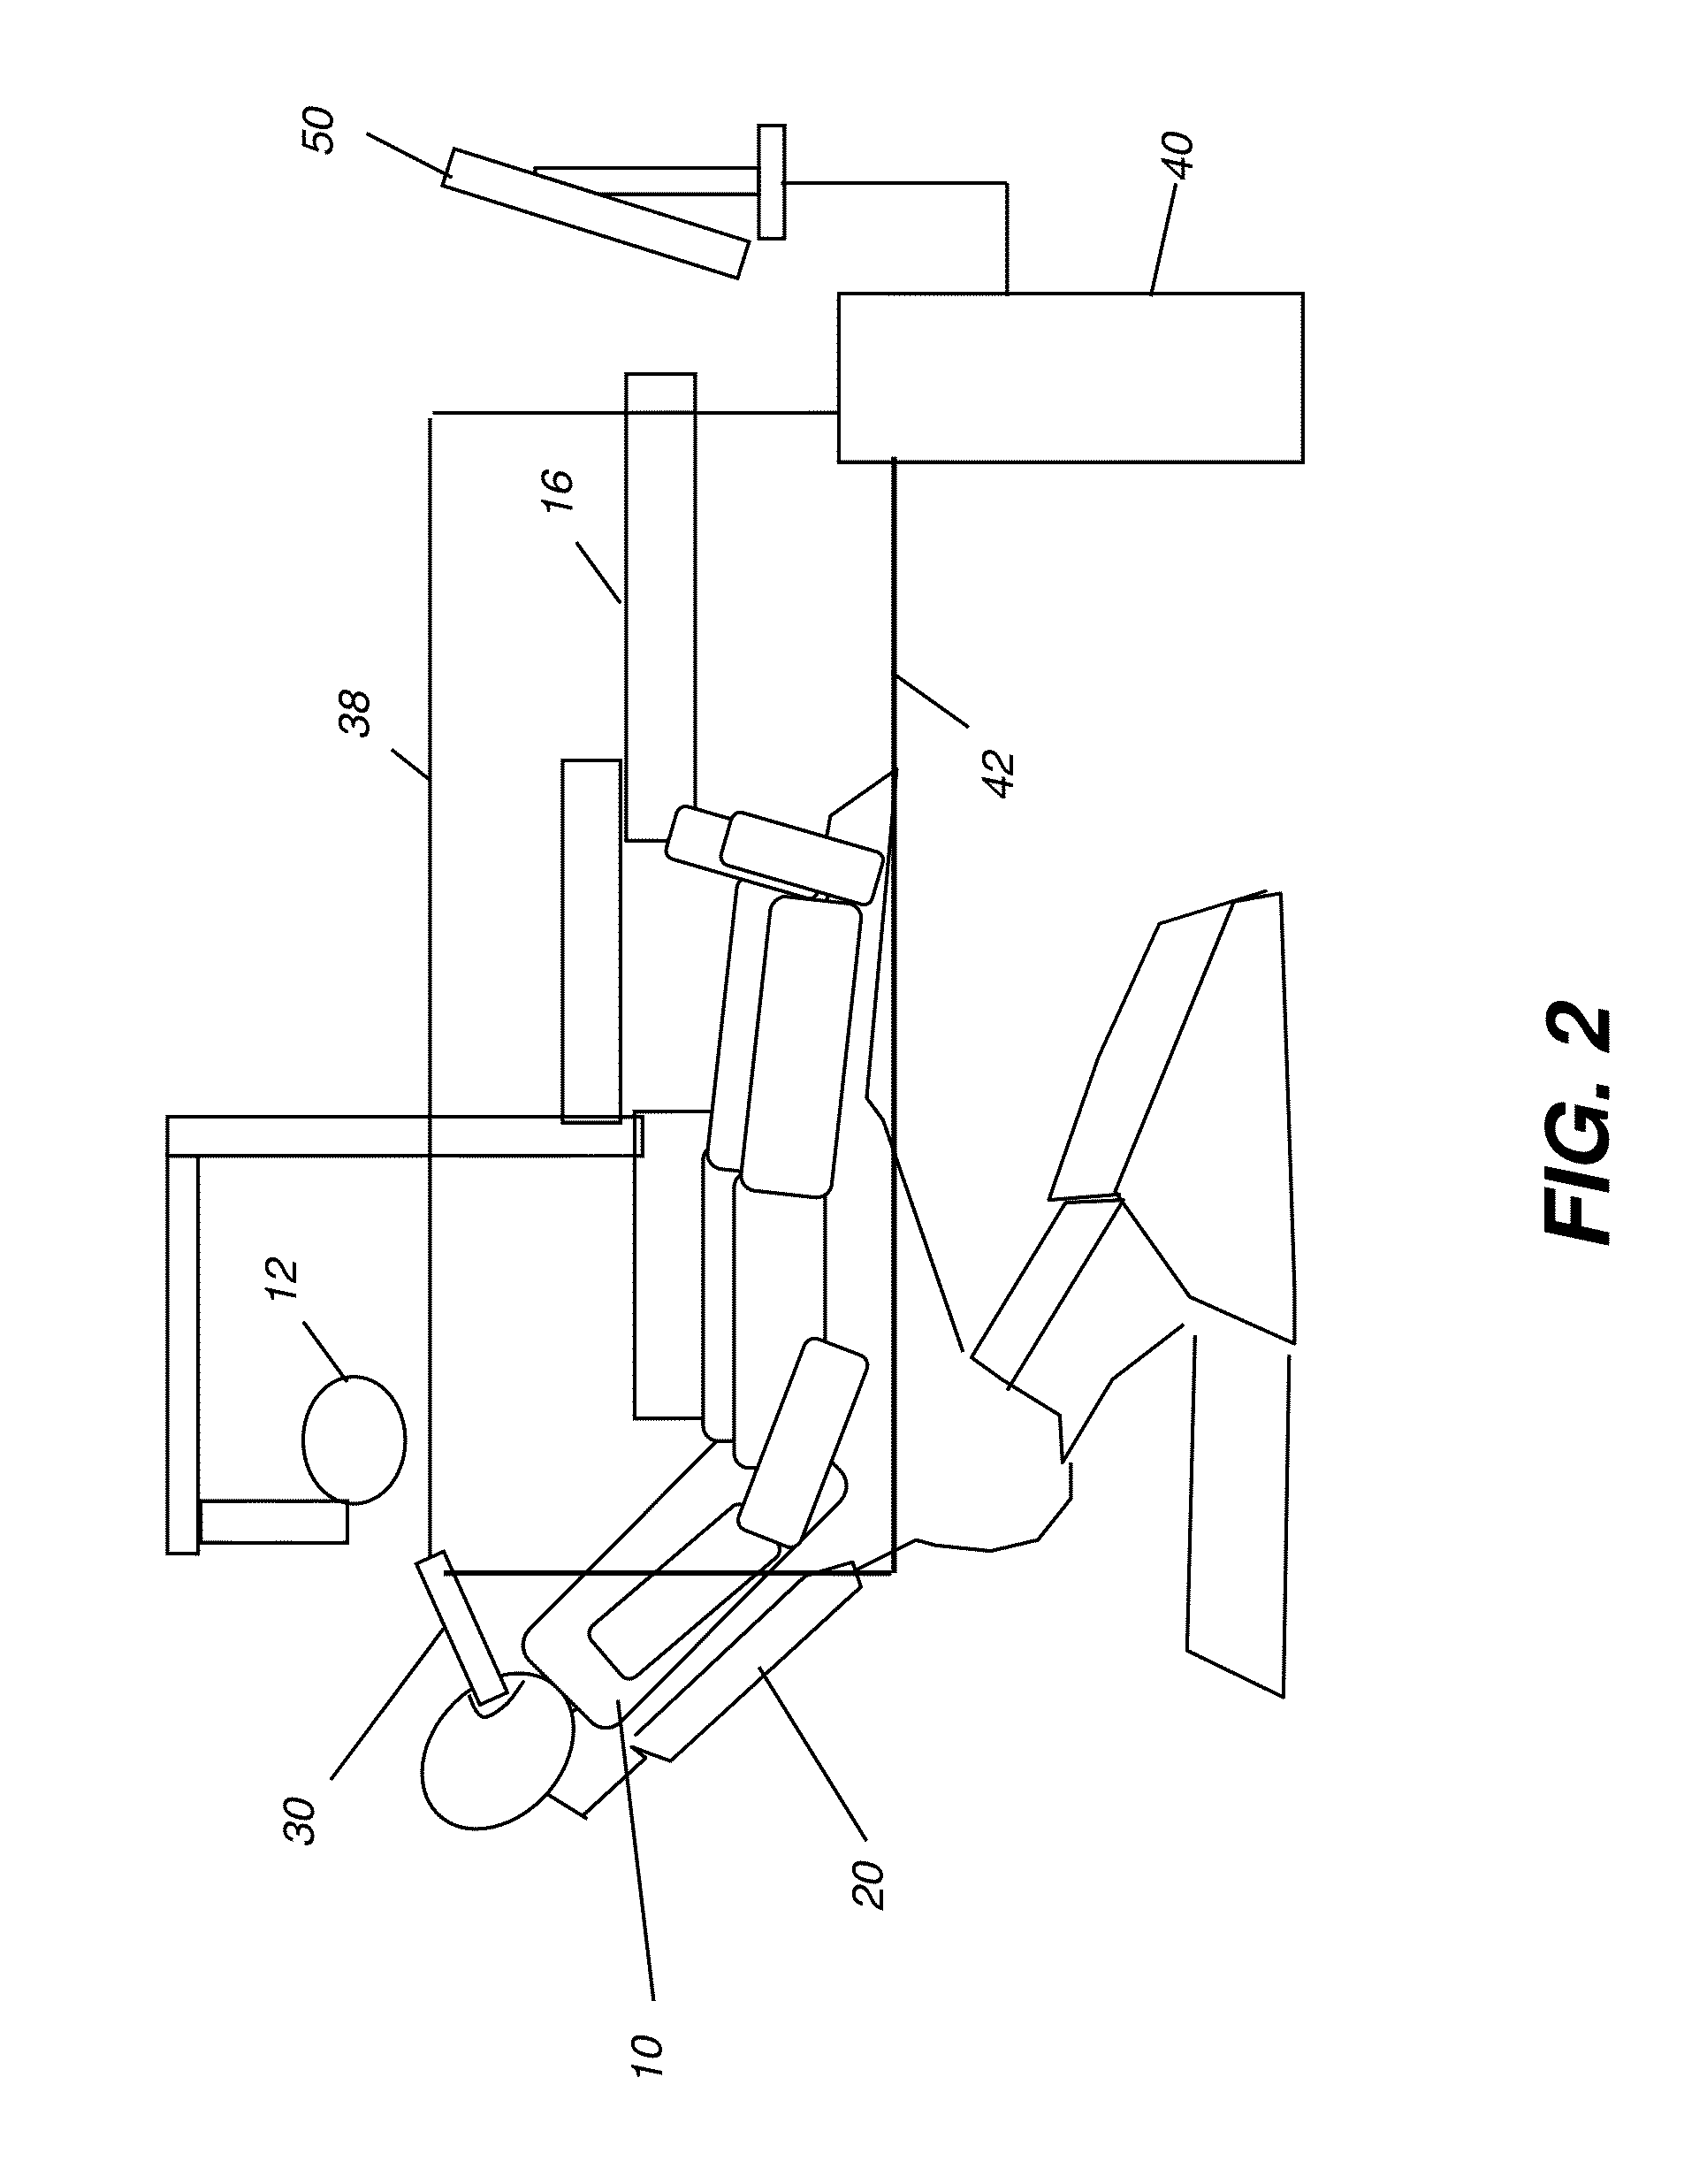 Wire Harness Connectors A1 2 3 Auto Electrical Wiring Diagram